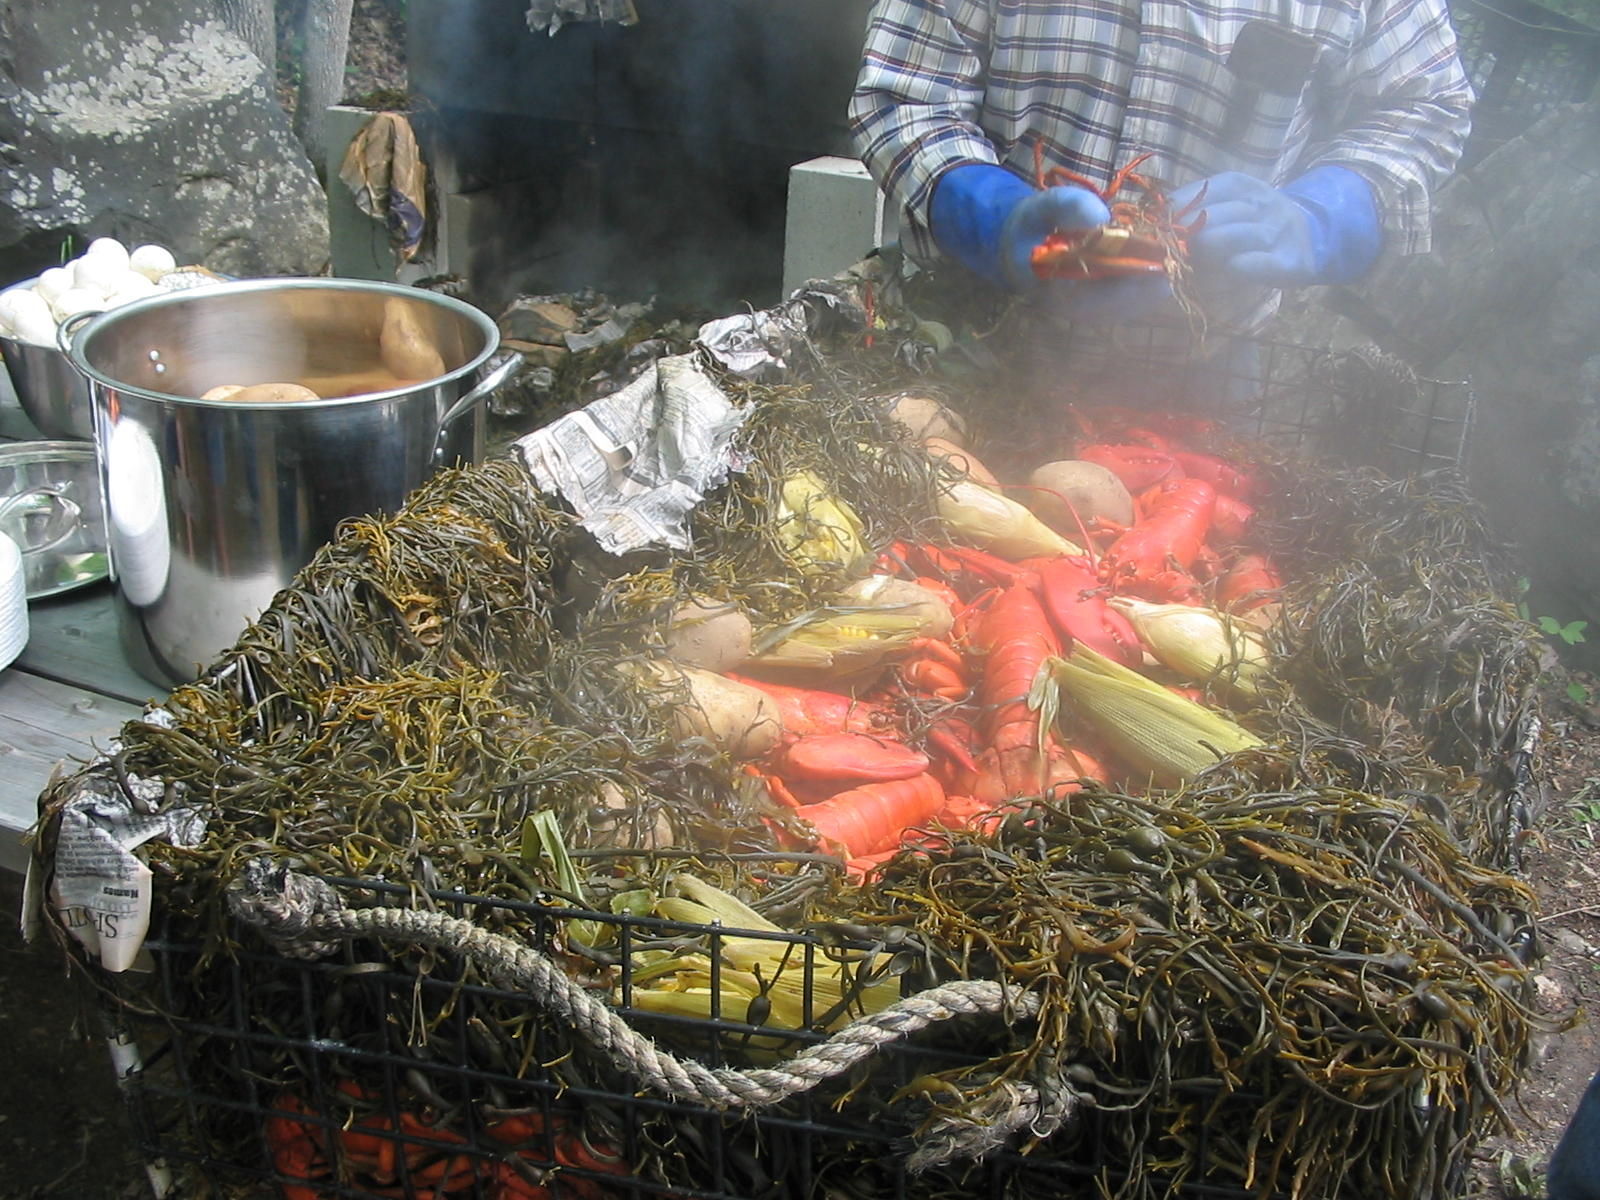 Clambake Recipe - Learn How to Make a Clambake at LobsterHelp.com